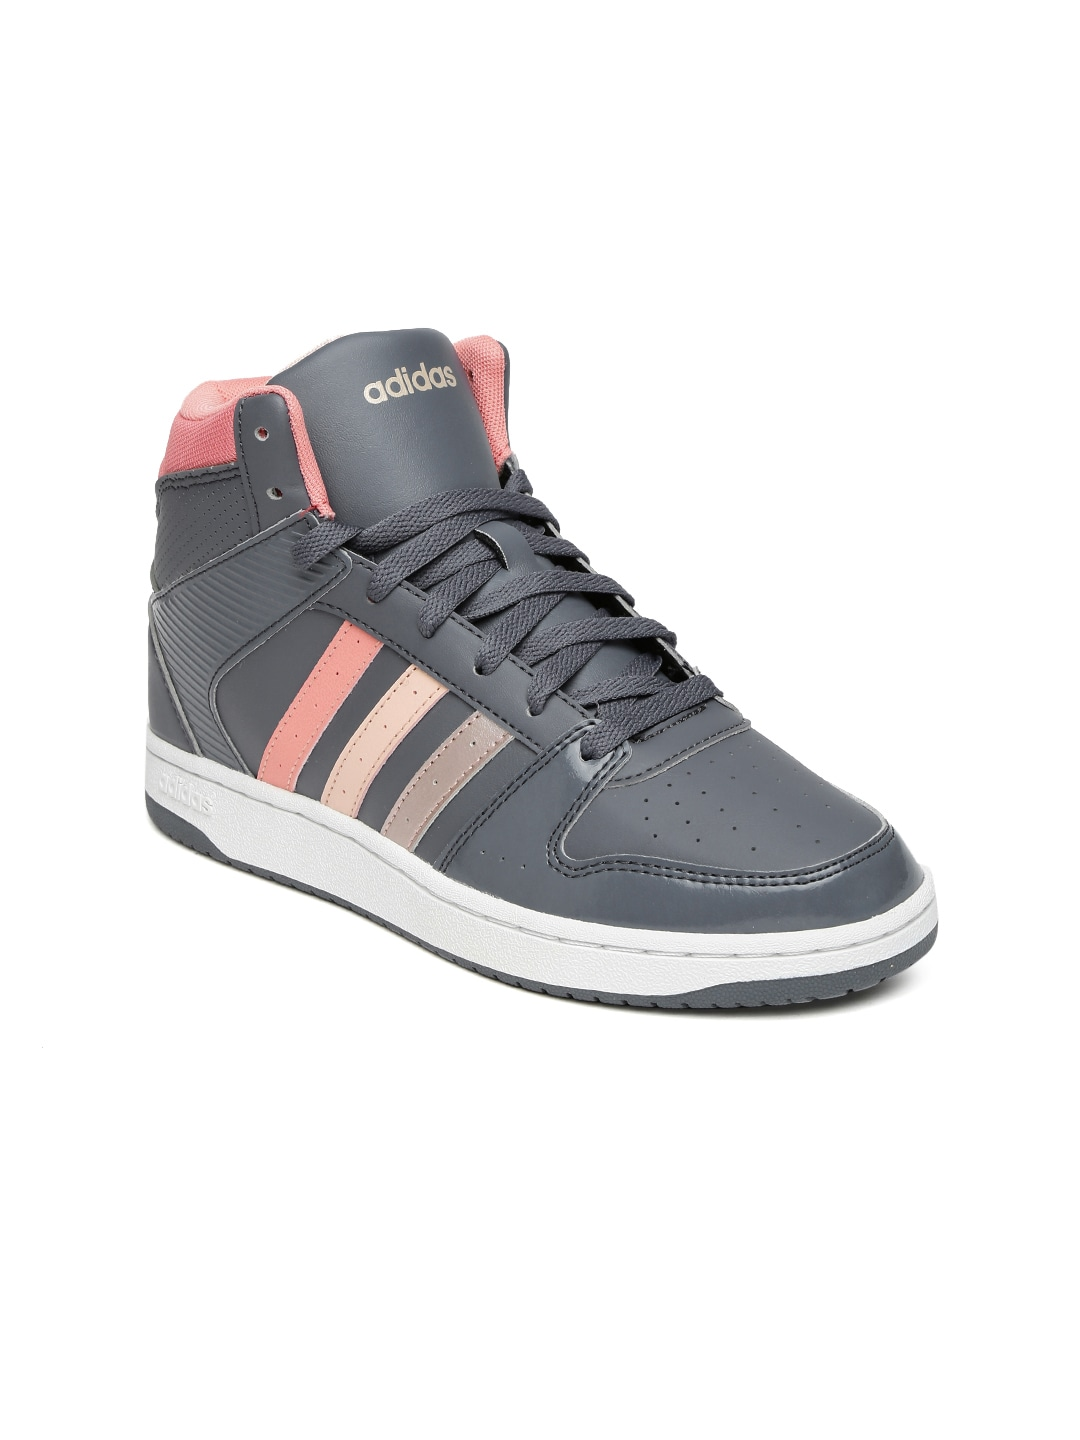 983d55c5306f Adidas Neo Shoes - Buy Adidas Neo Shoes online in India